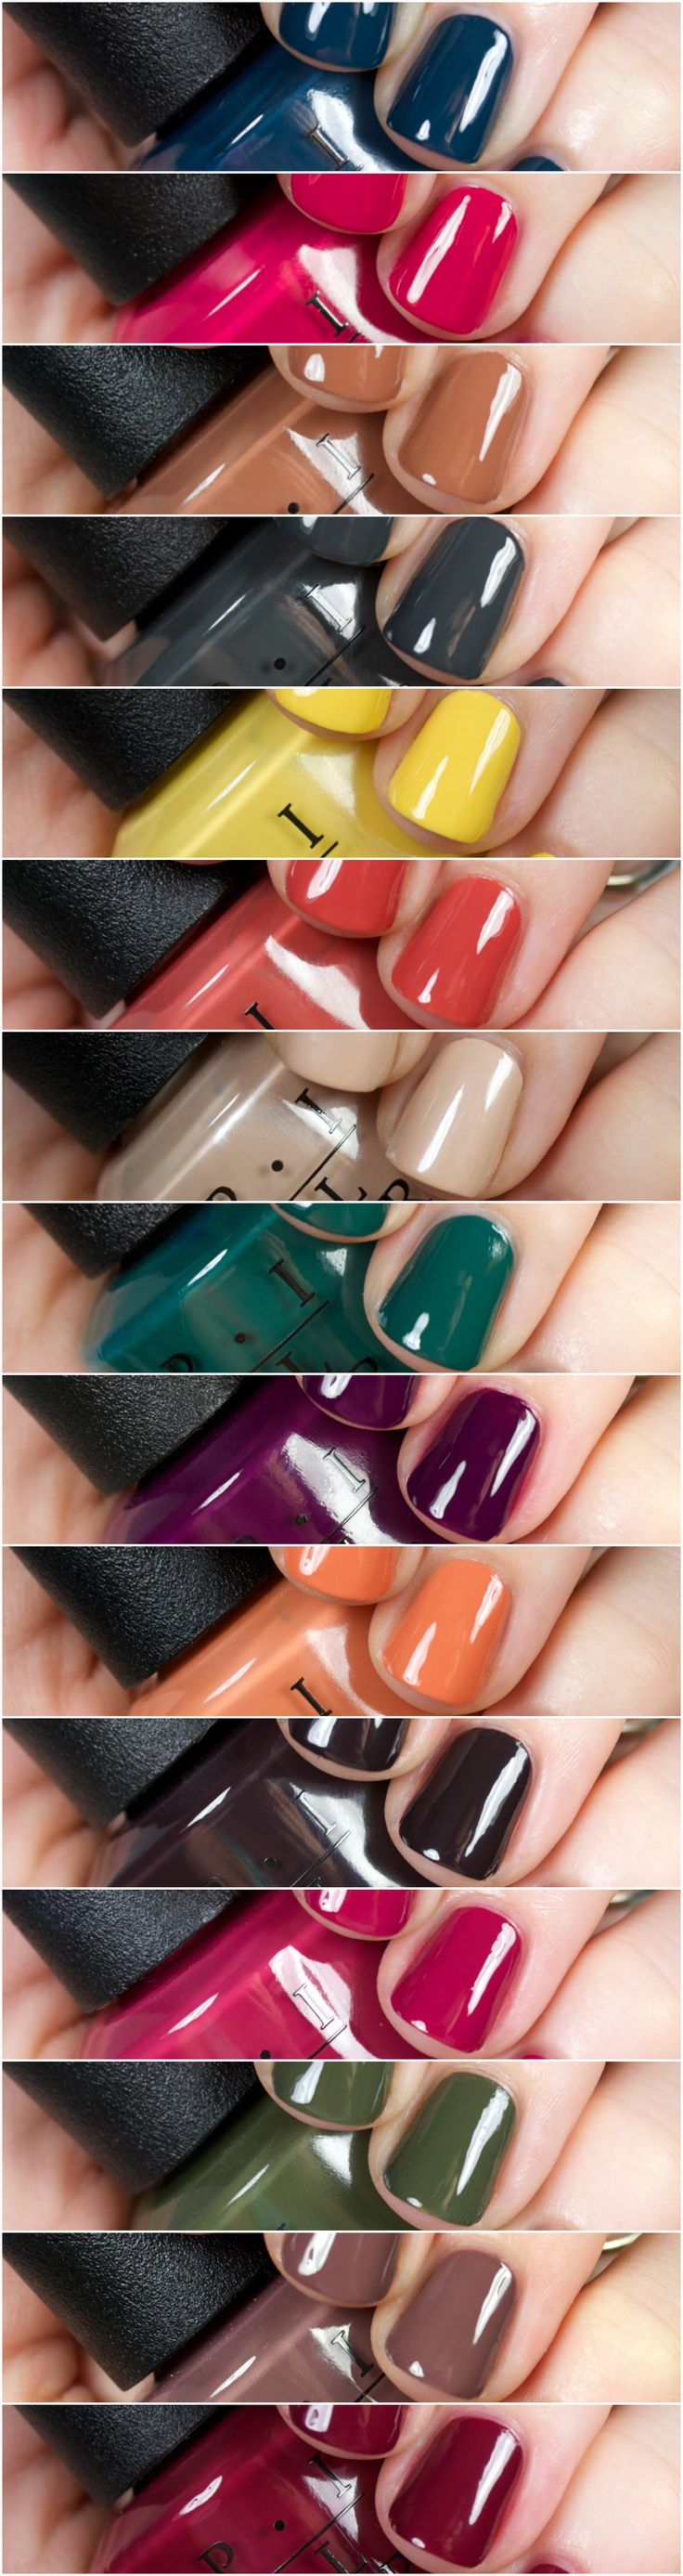 OPI Washington DC Collection